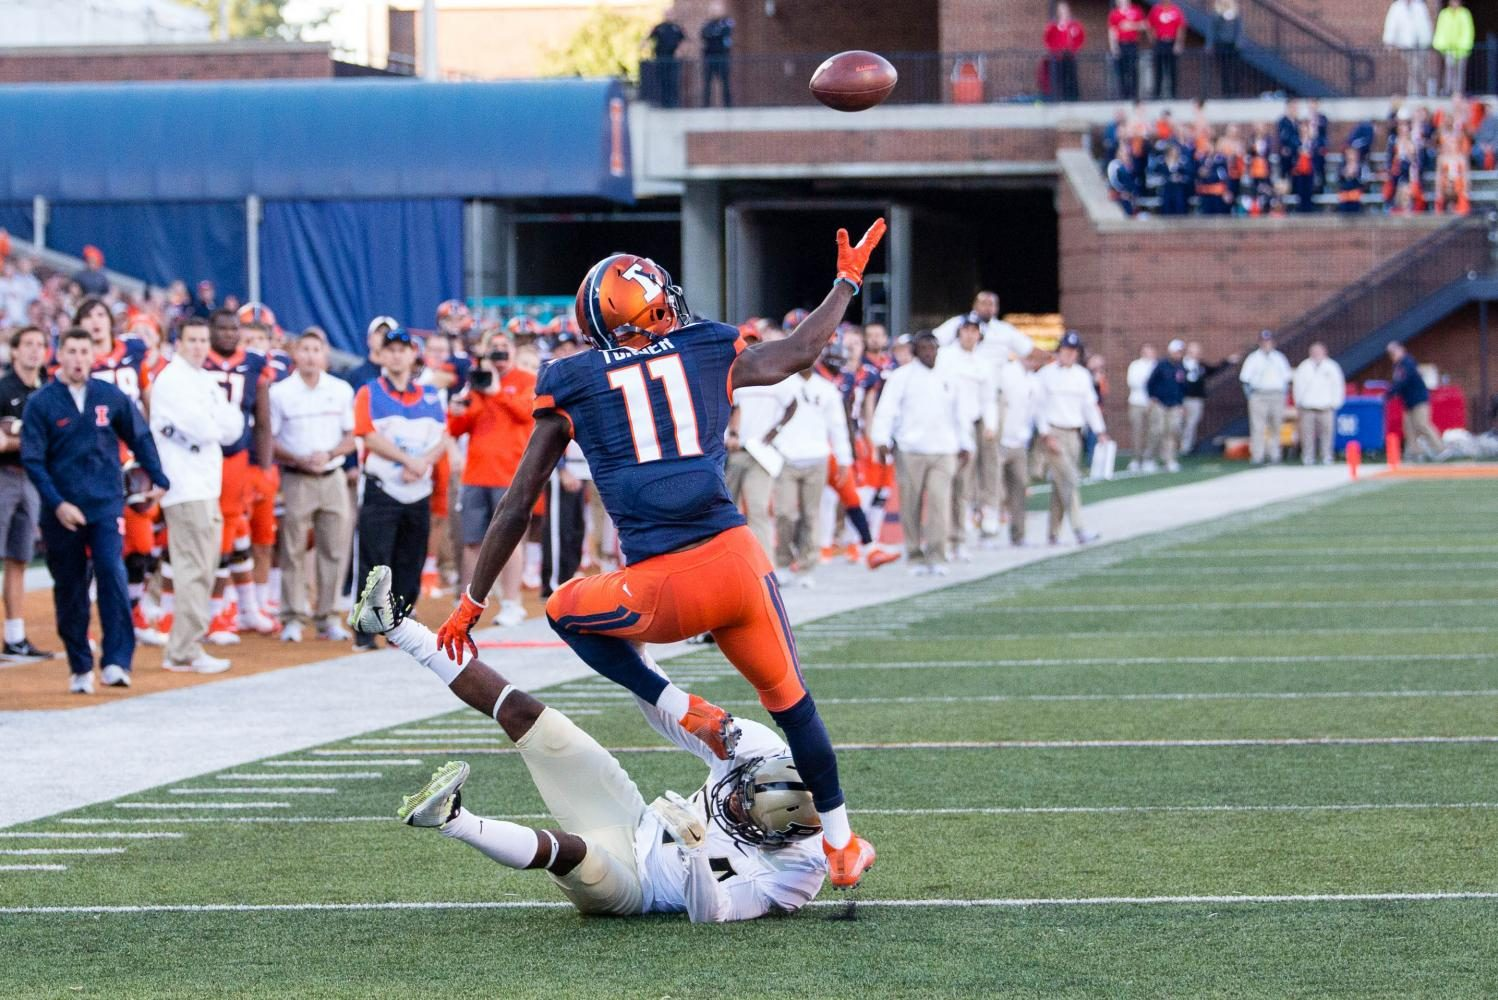 Illinois+wide+receiver+Malik+Turner+gets+ready+to+catch+a+ball+that+he+tipped+during+the+game+against+Purdue+at+Memorial+Stadium+on+Oct.+8%2C+2016.+Turner+was+named+to+the+Reese%27s+Senior+Bowel+watch+list.+